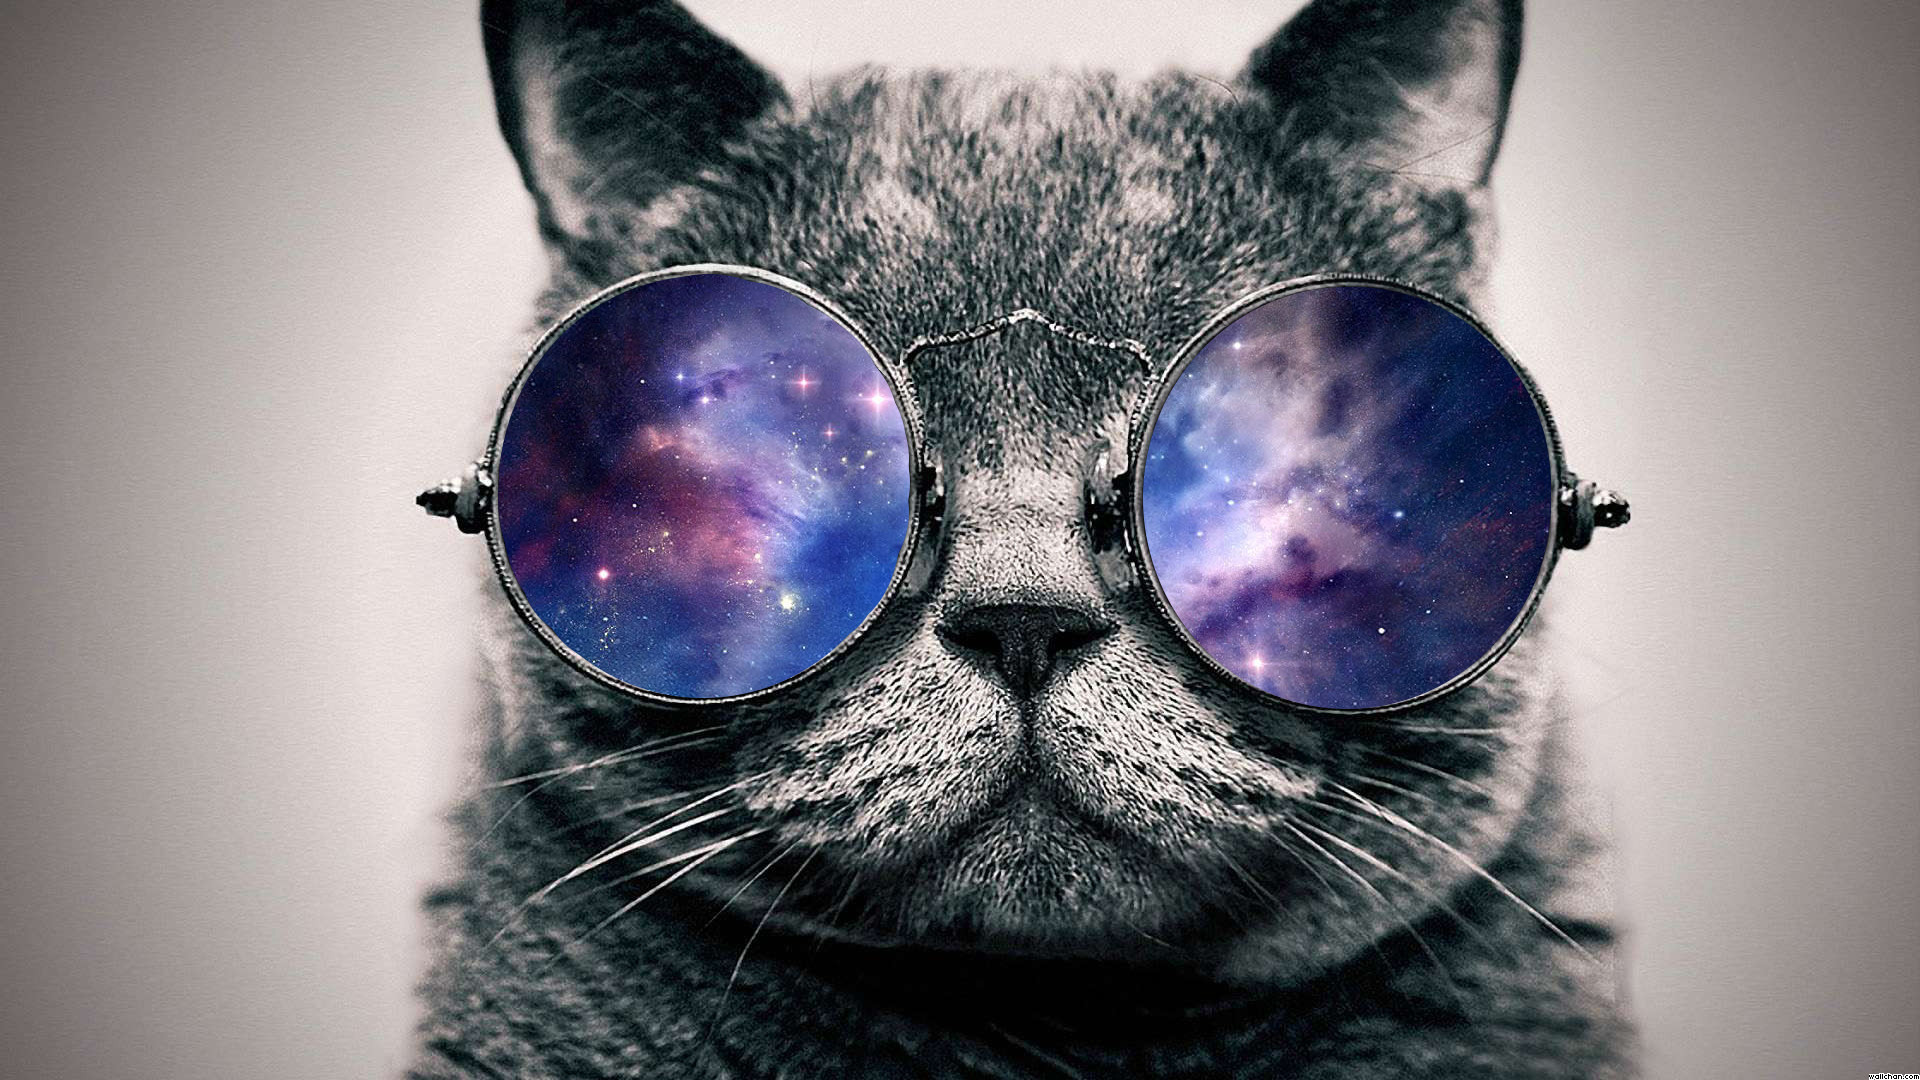 Space Cat with Galaxy Glasses - Pics about space